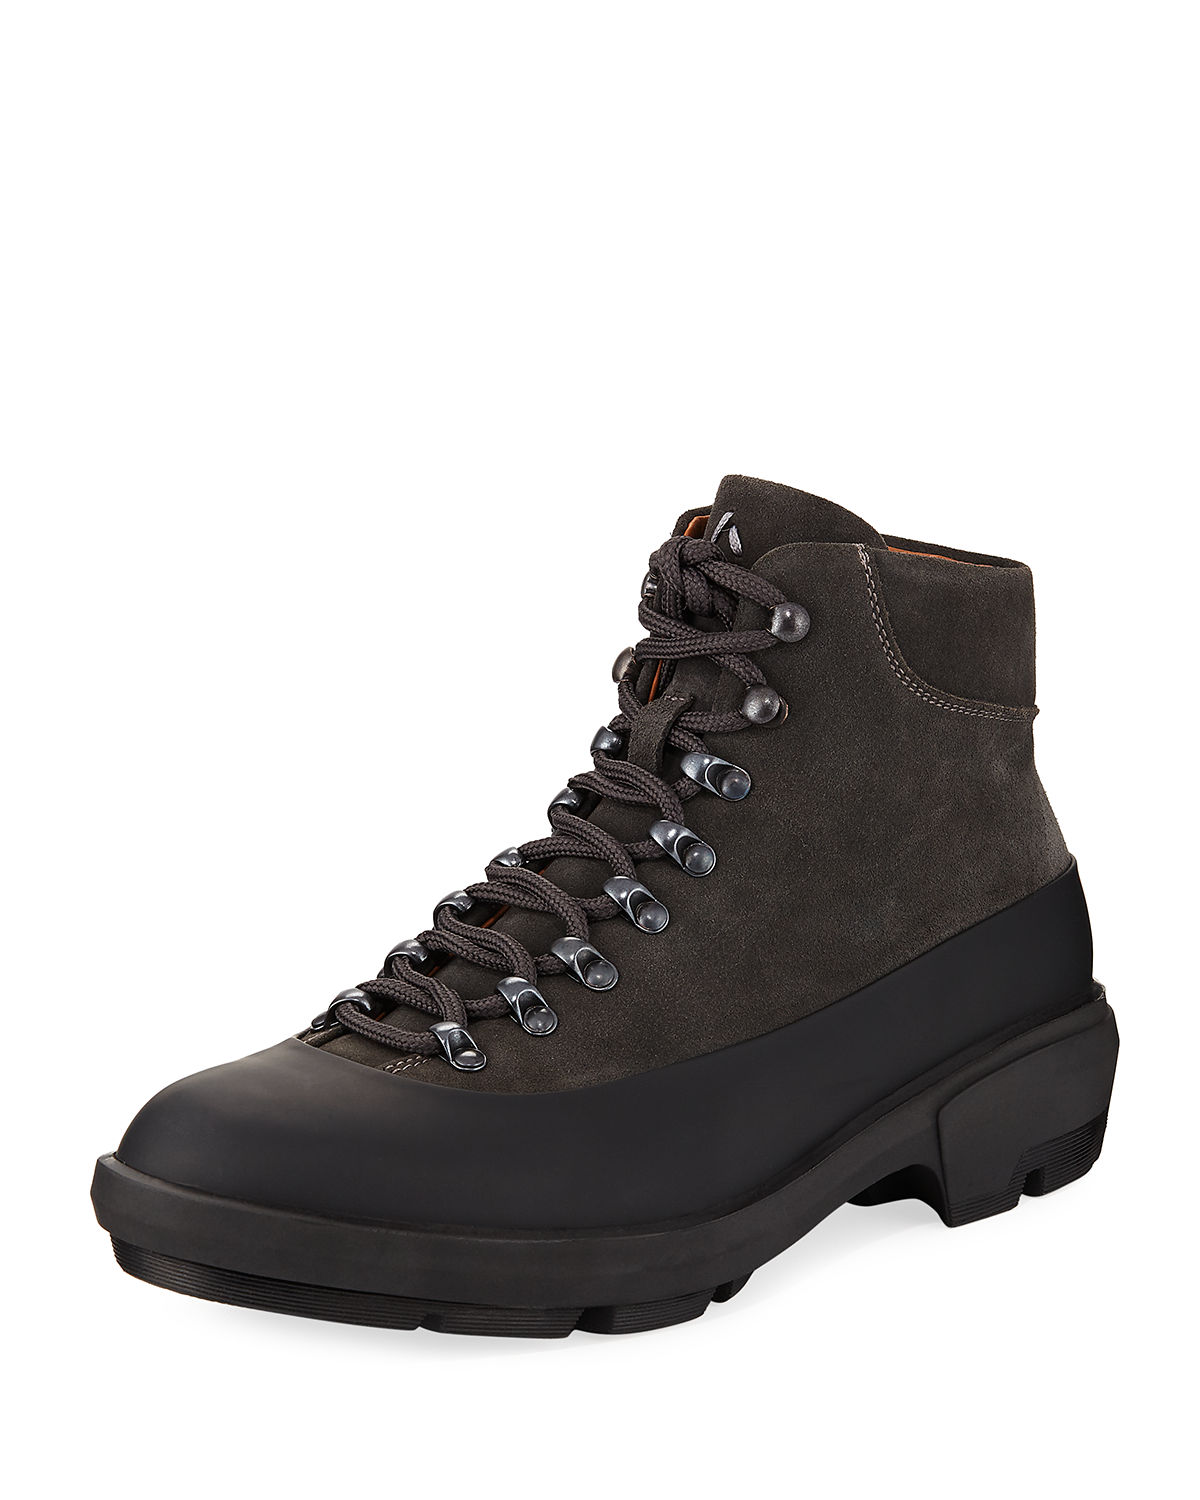 Weatherproof Suede Lace-Up Duck Boot